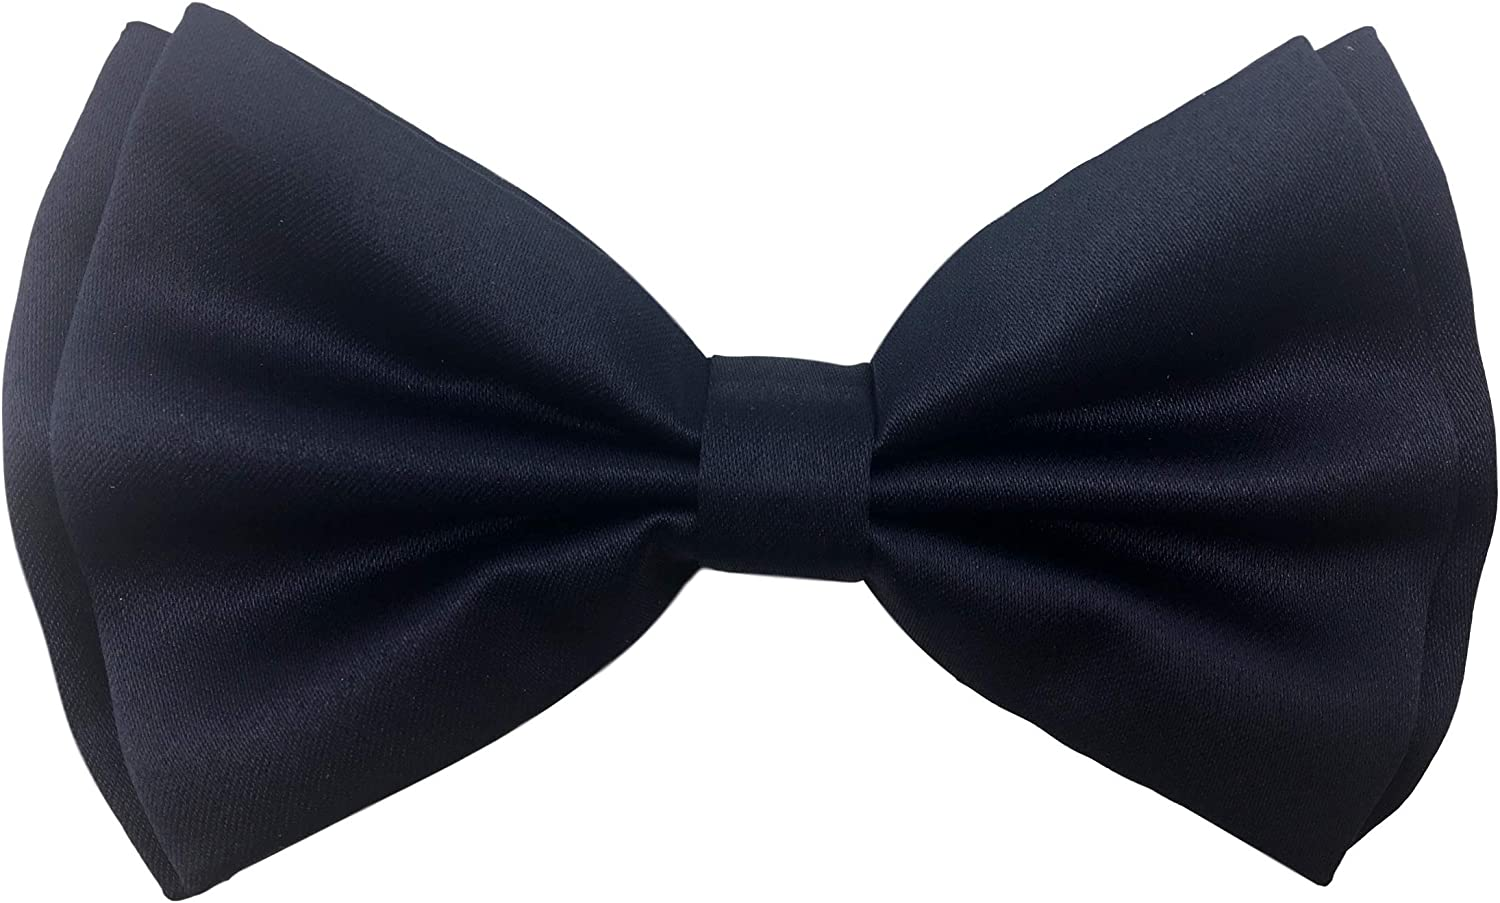 Consumable Depot Adult Bow Tie | Men's and Women's Adjustable Bow Tie | Accessories for Men and Women